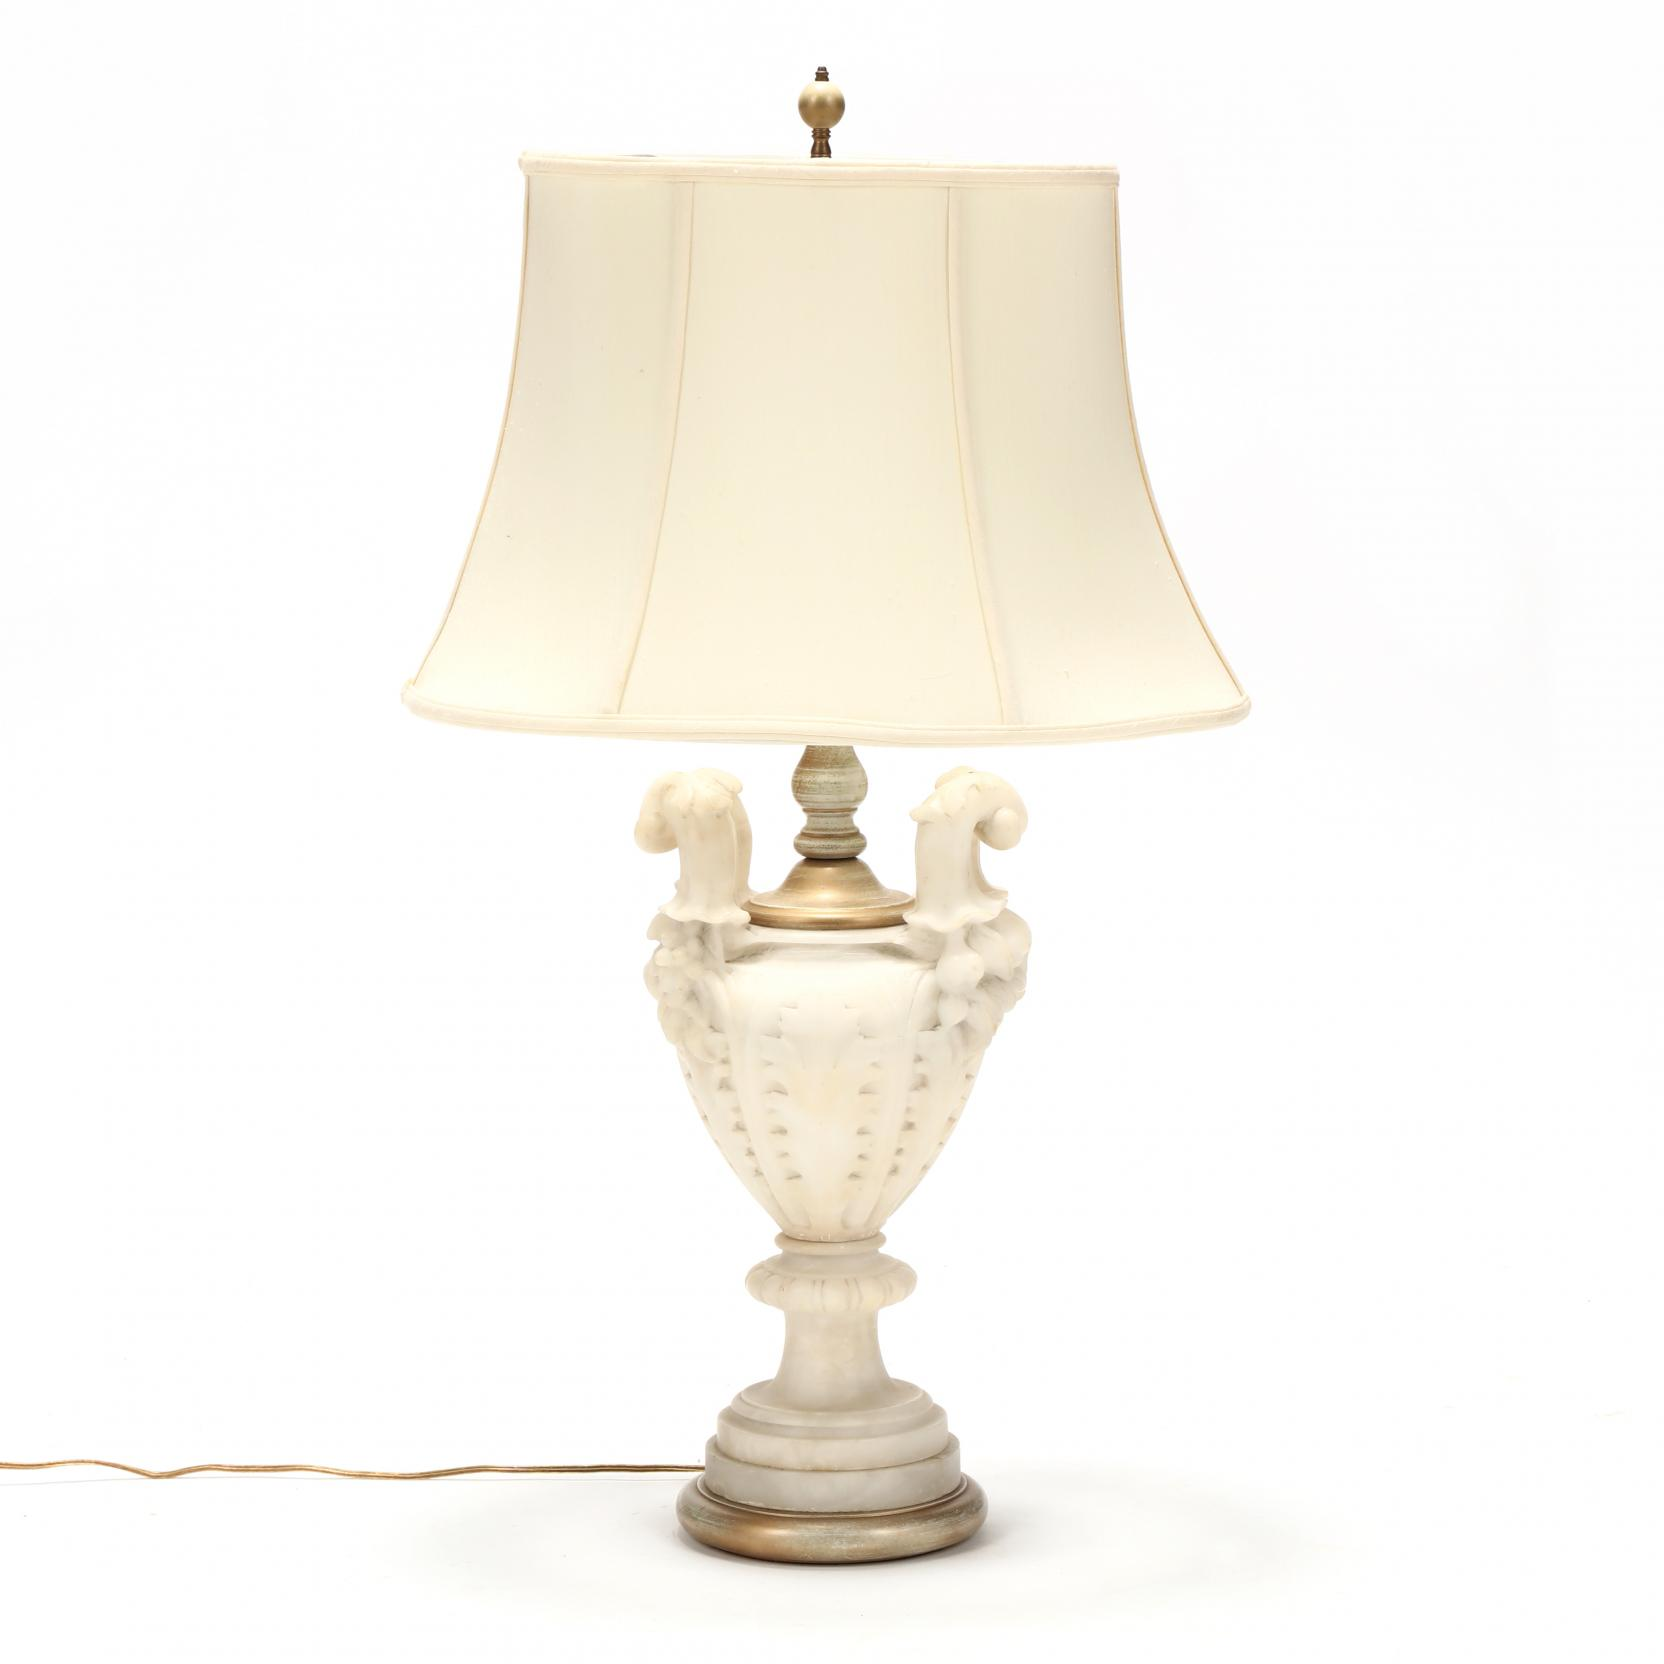 classical-style-carved-alabaster-urn-form-table-lamp